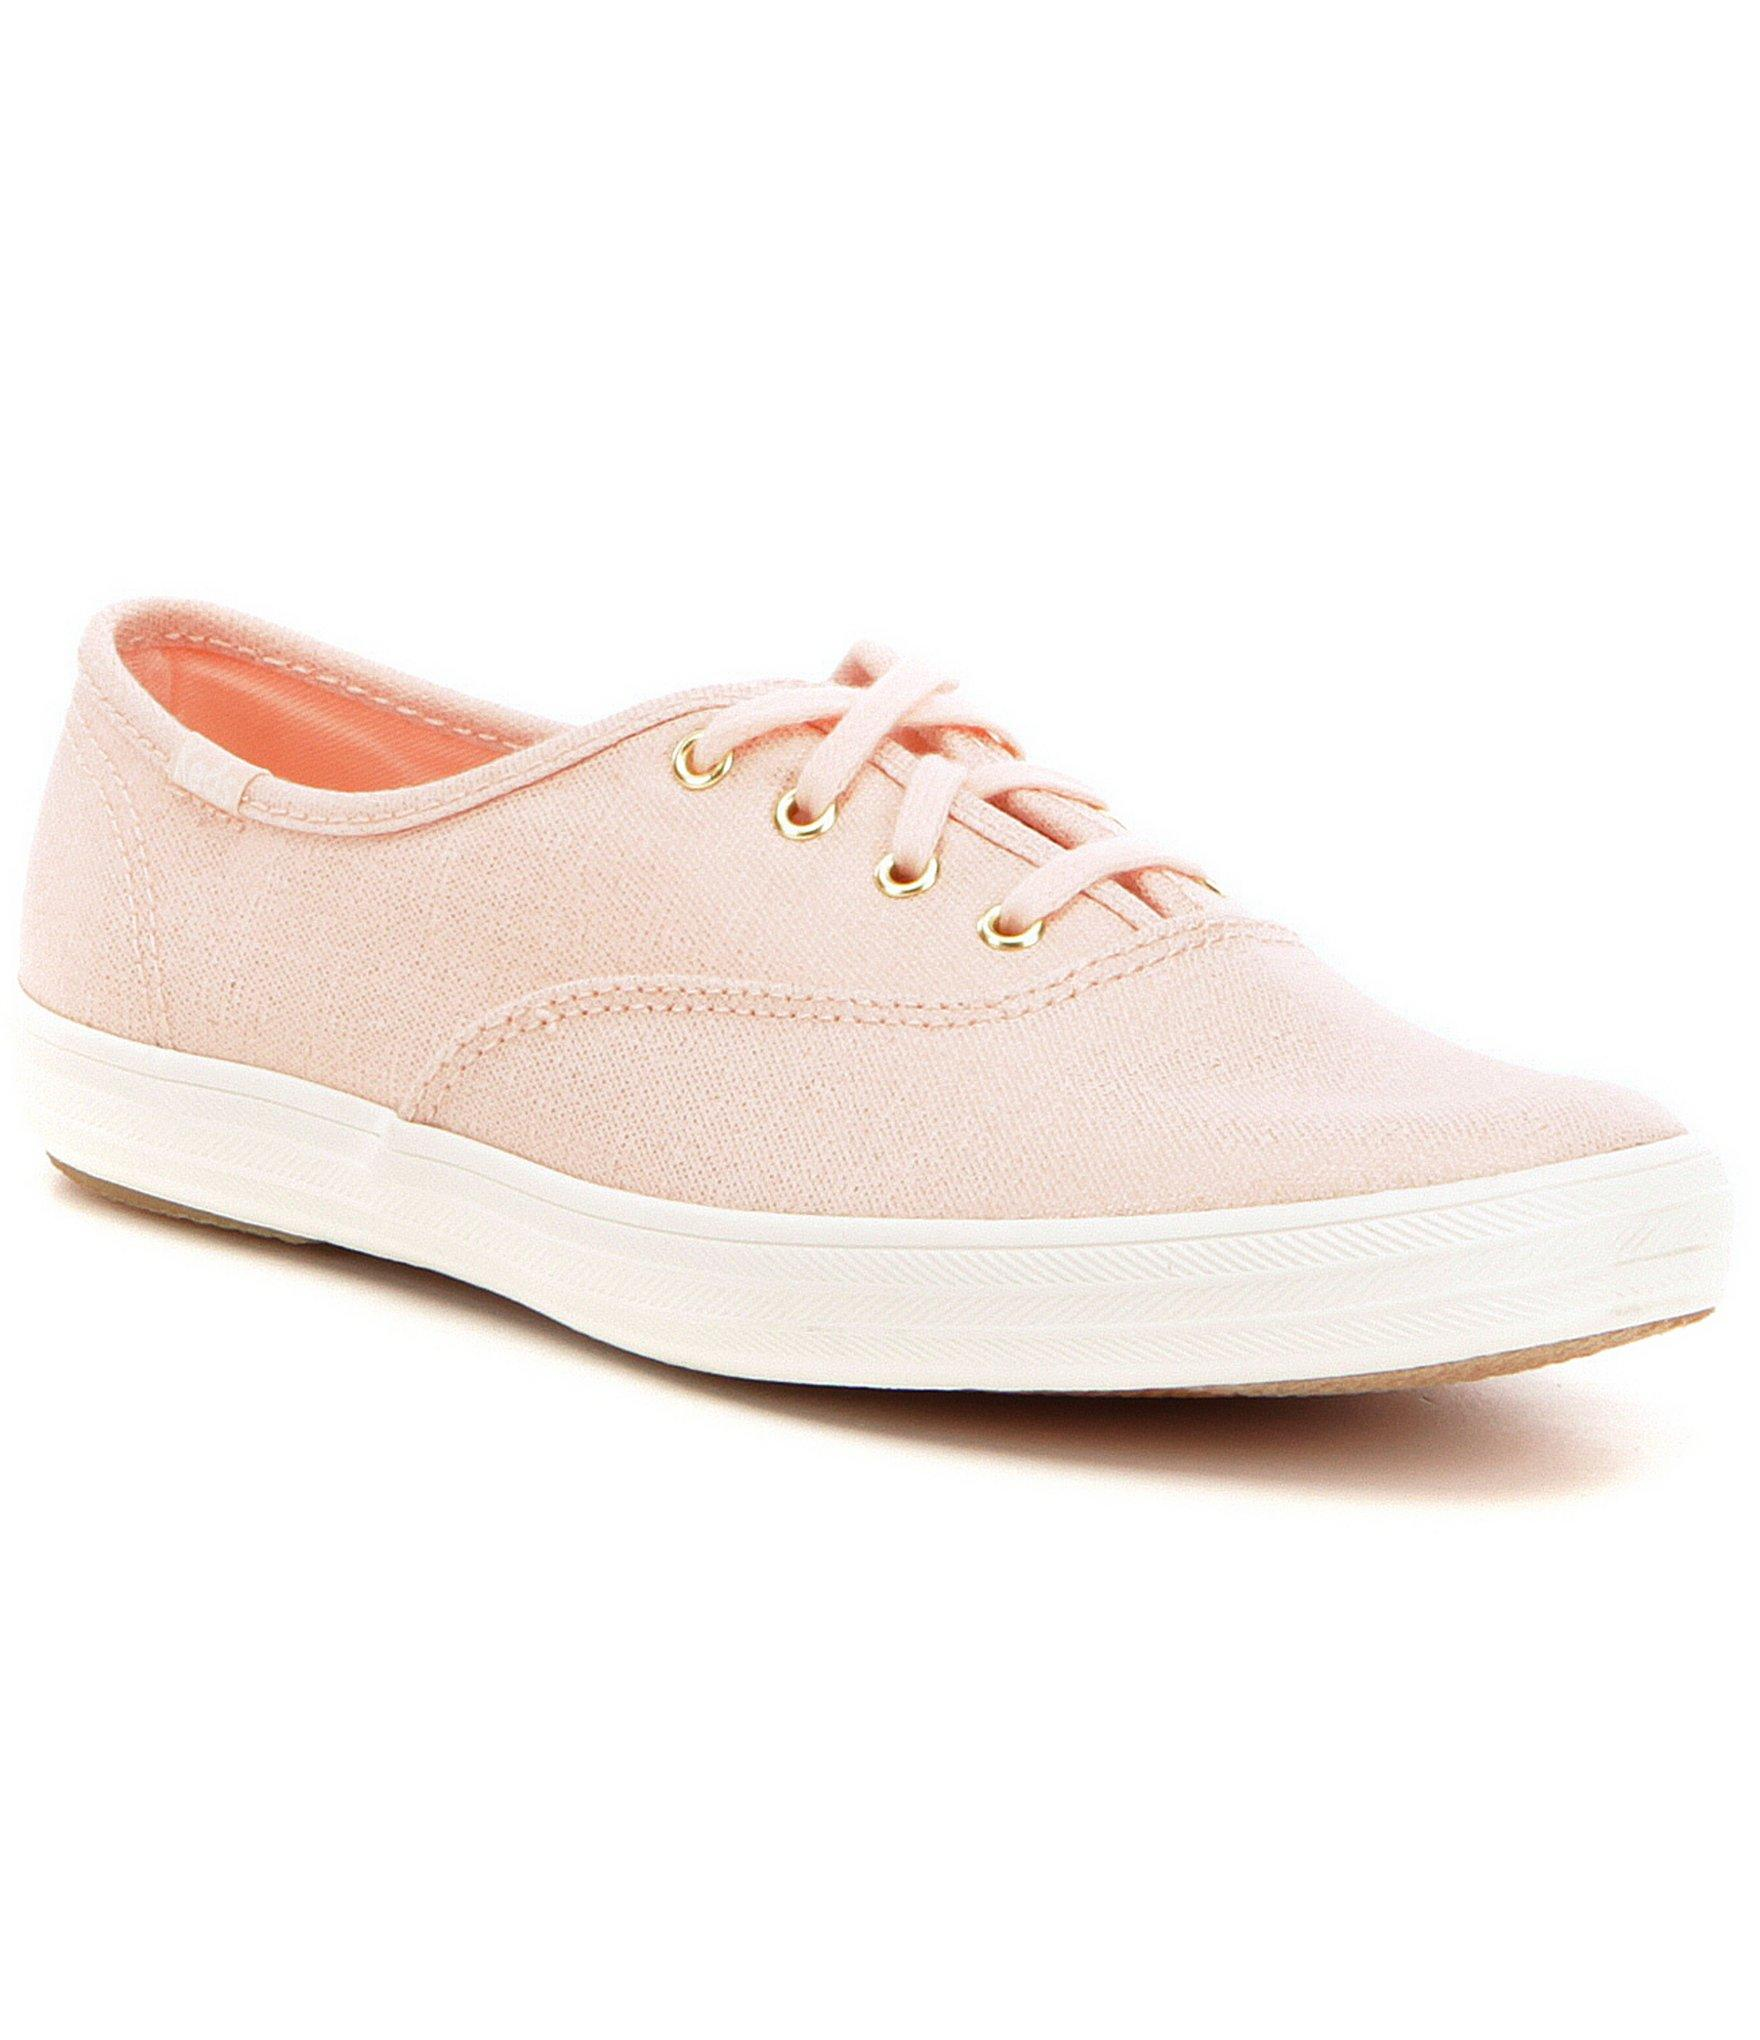 4a40970af573 Lyst - Keds Champion Metallic Twill Lace Up Sneakers in Pink